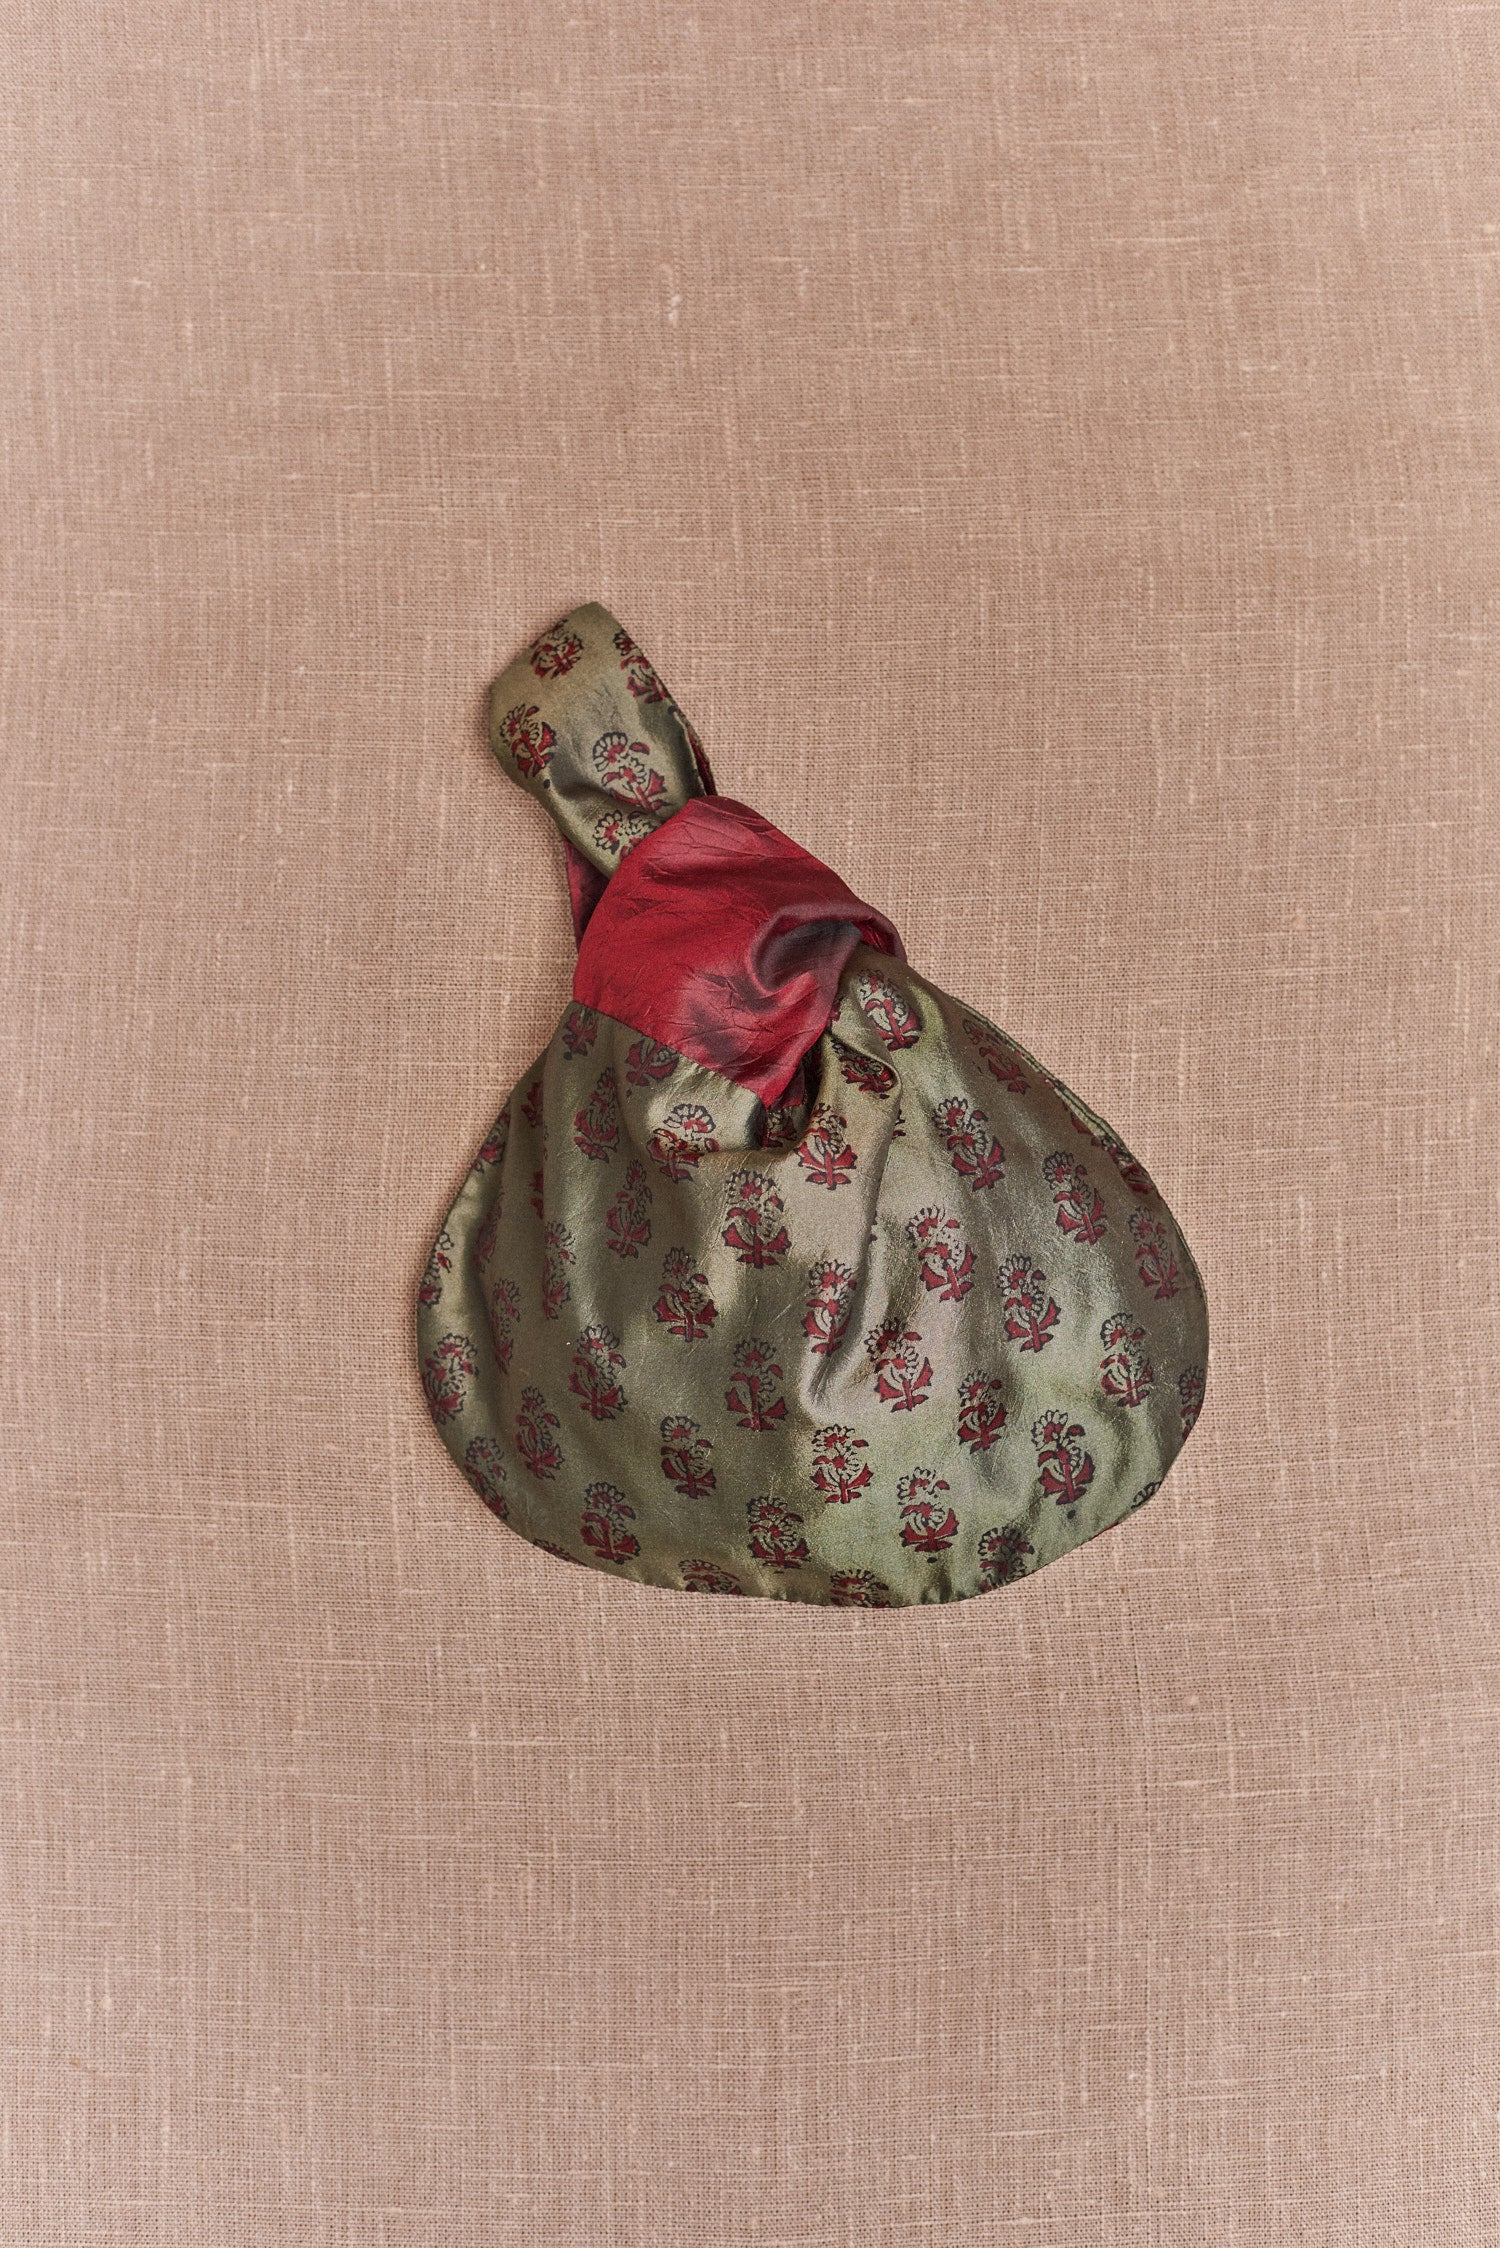 Koel, Mini Tie Bag Moss Green and Maroon Print